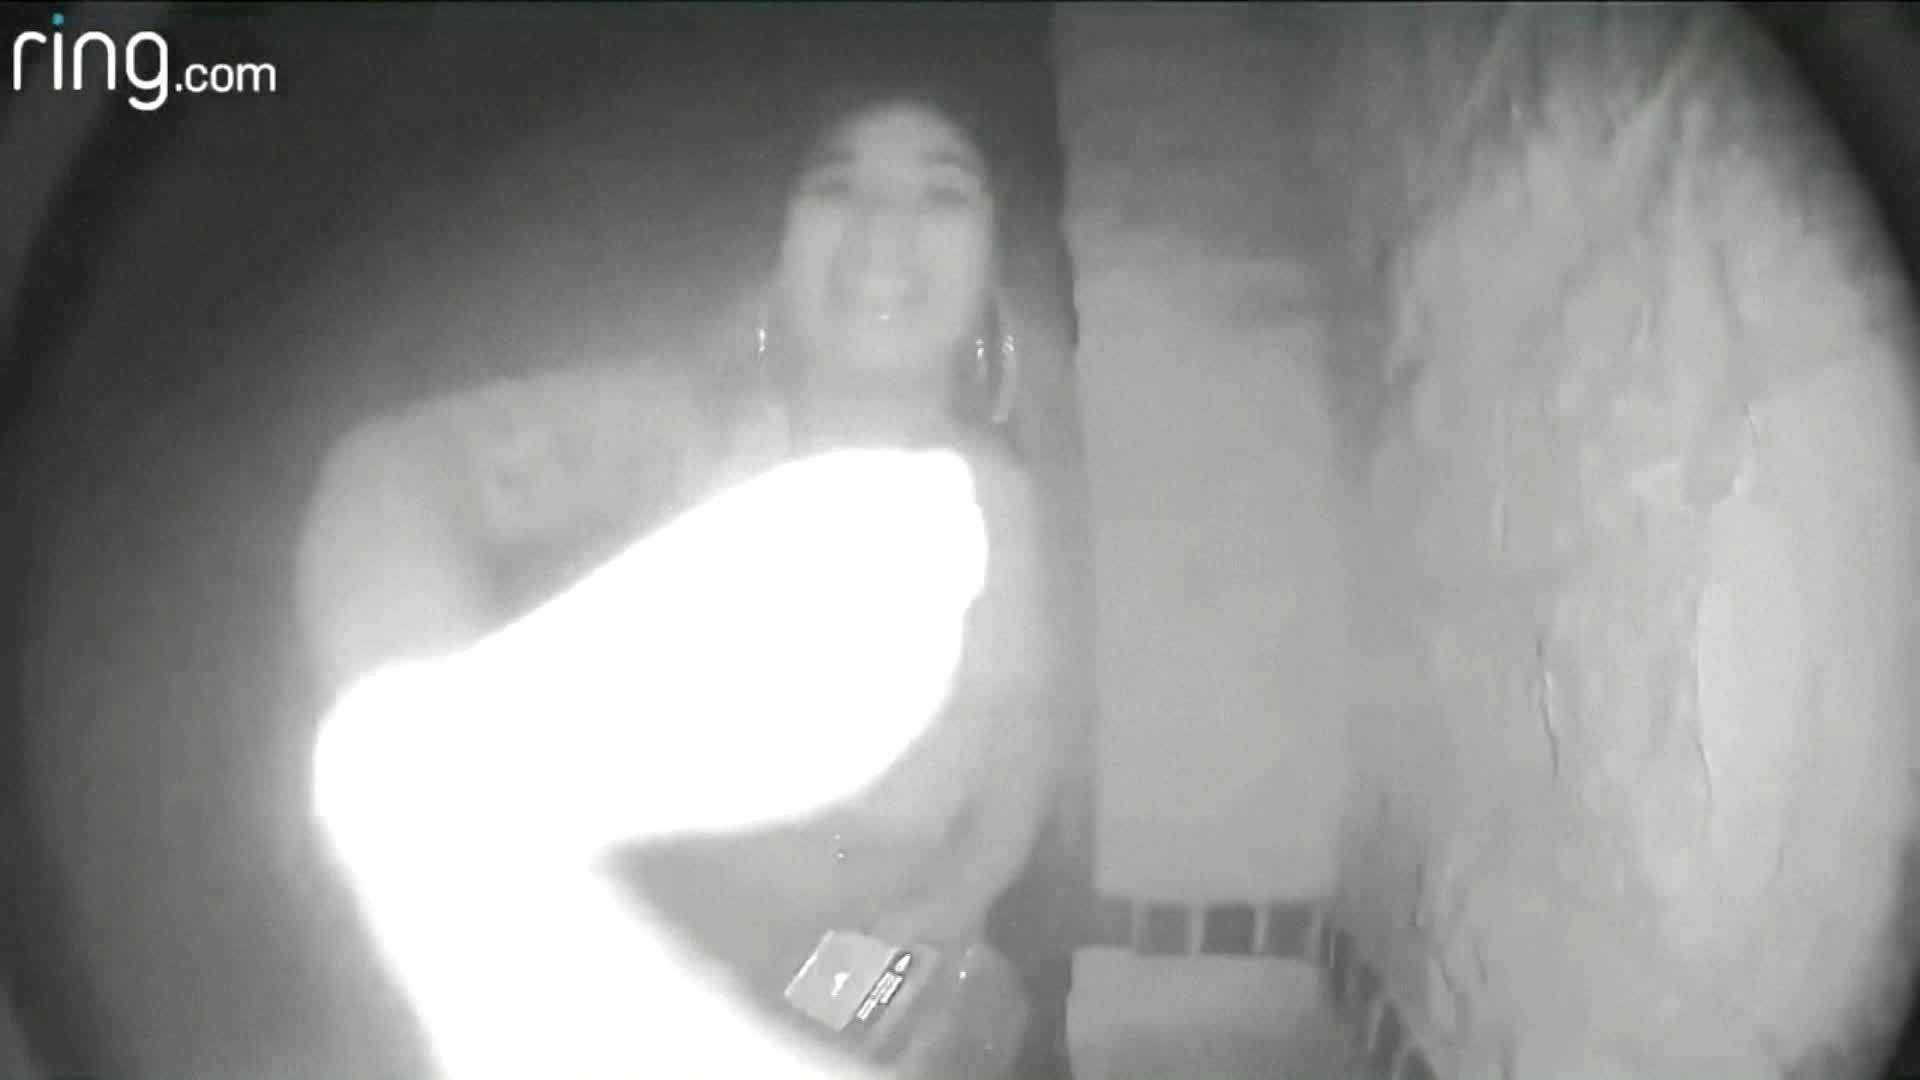 Doorbell cam shows Texas woman ditching toddler on doorstep